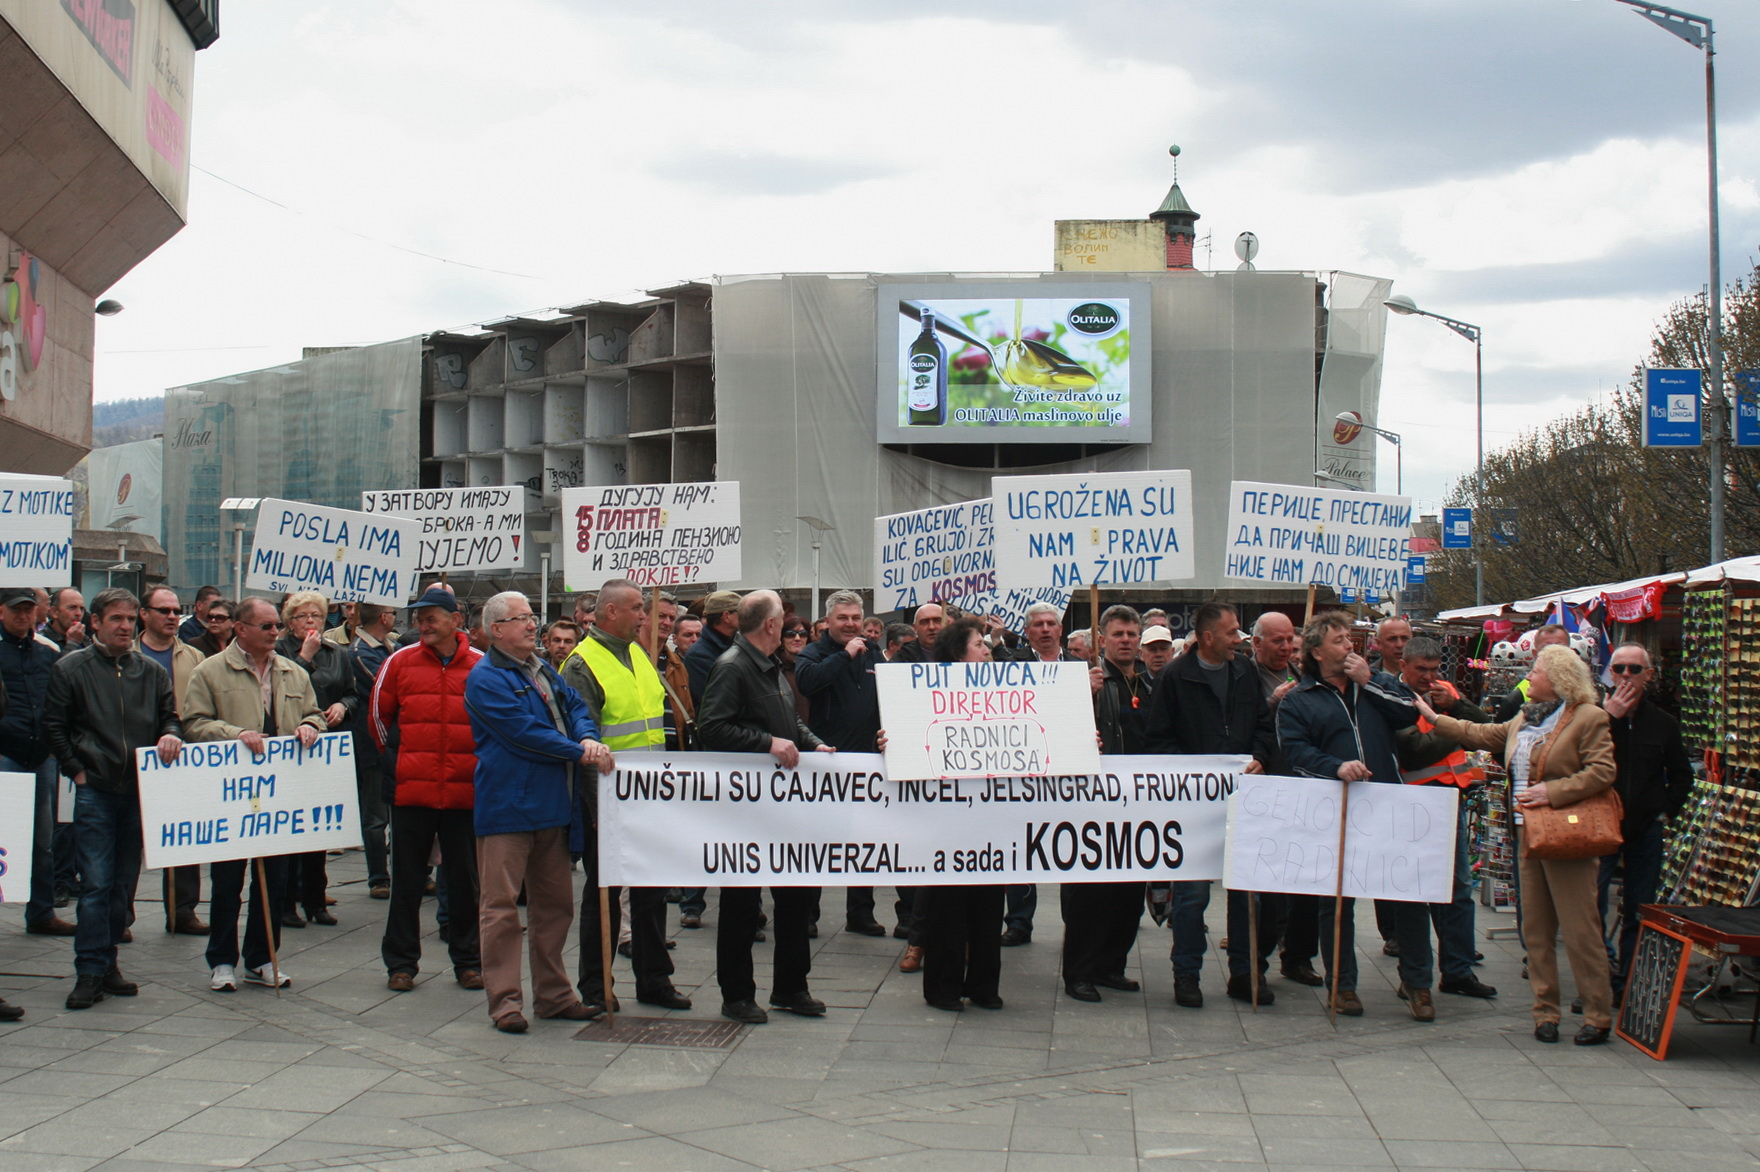 Part of 'Kosmos' employees protest – others go to work normally